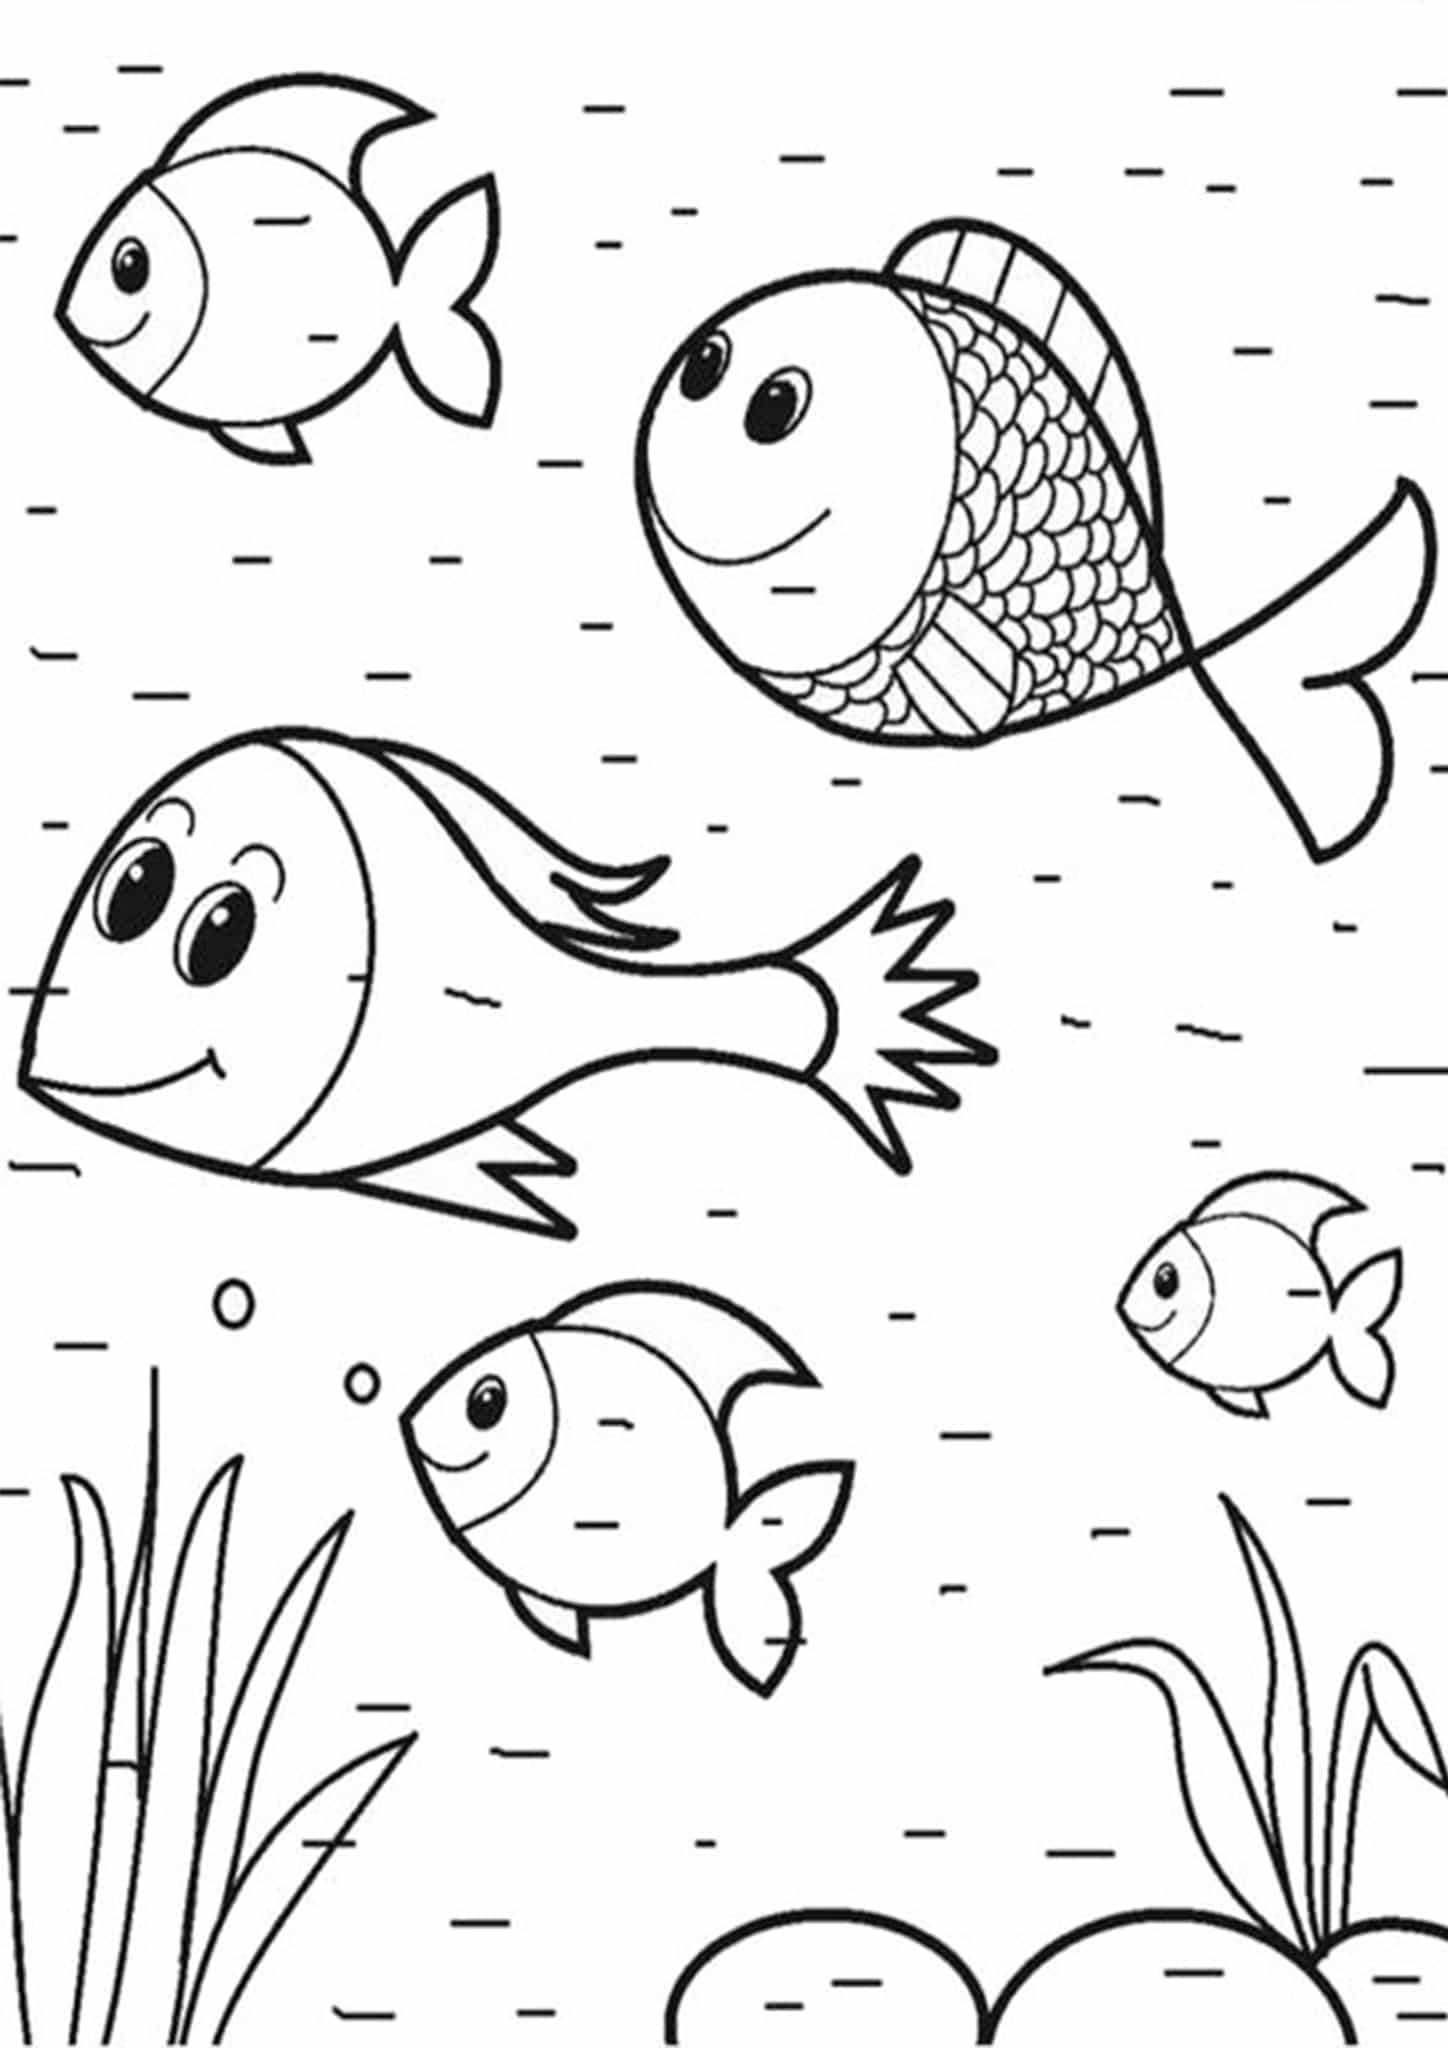 coloring pages for fish four fish coloring printables to print or download coloring for pages fish